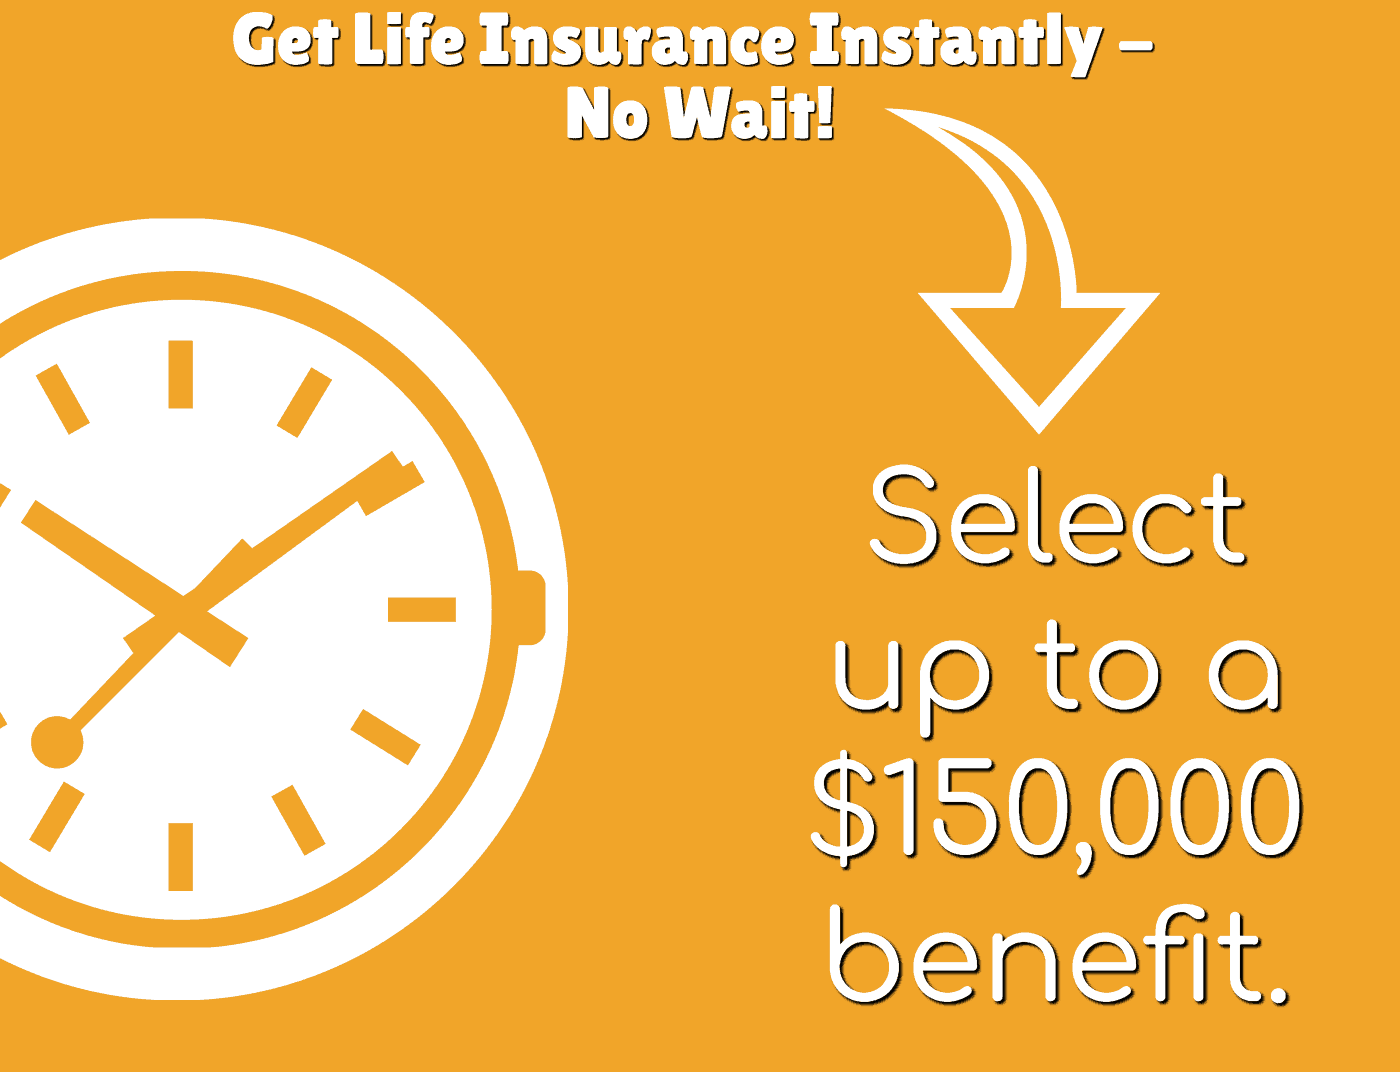 Whole Life Quotes Online 100  Term Life Insurance Quotes Online Instant   Life